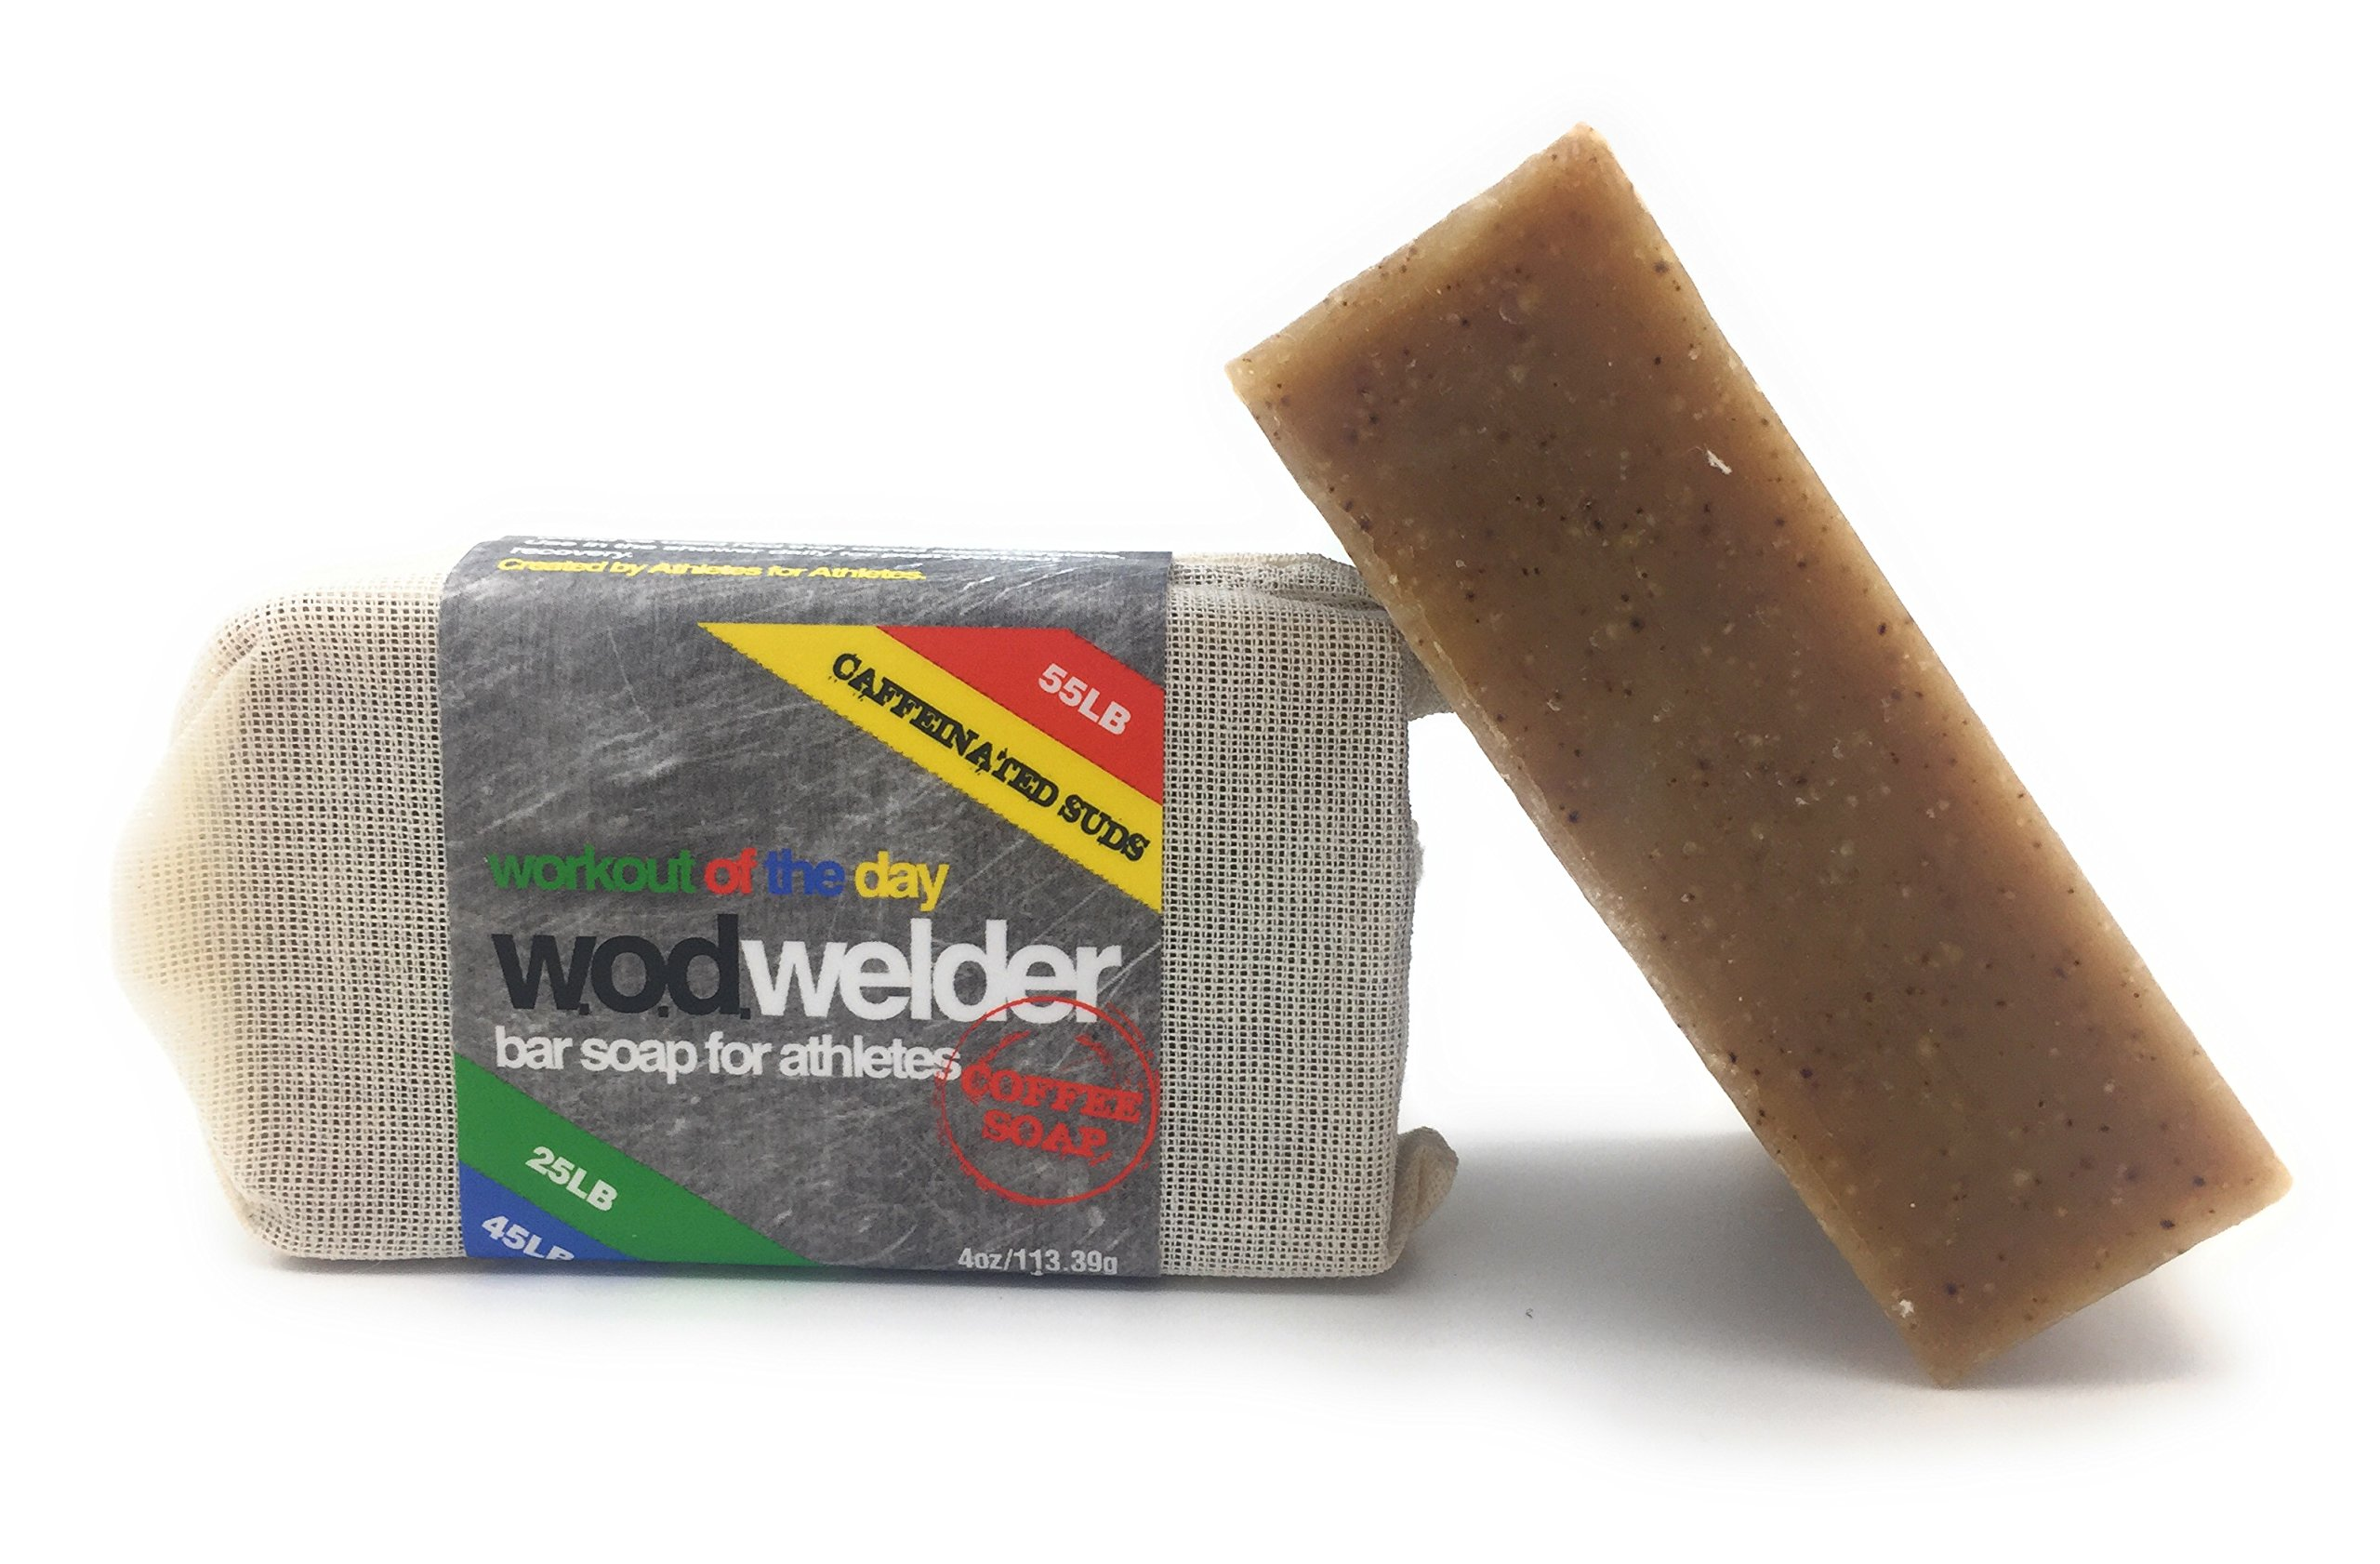 w.o.d welder All-Natural Coffee Exfoliating Bar Soap - 3 Pack - Post Workout Detox Soap Scrub for Athletes (3 Pack, Coffee)